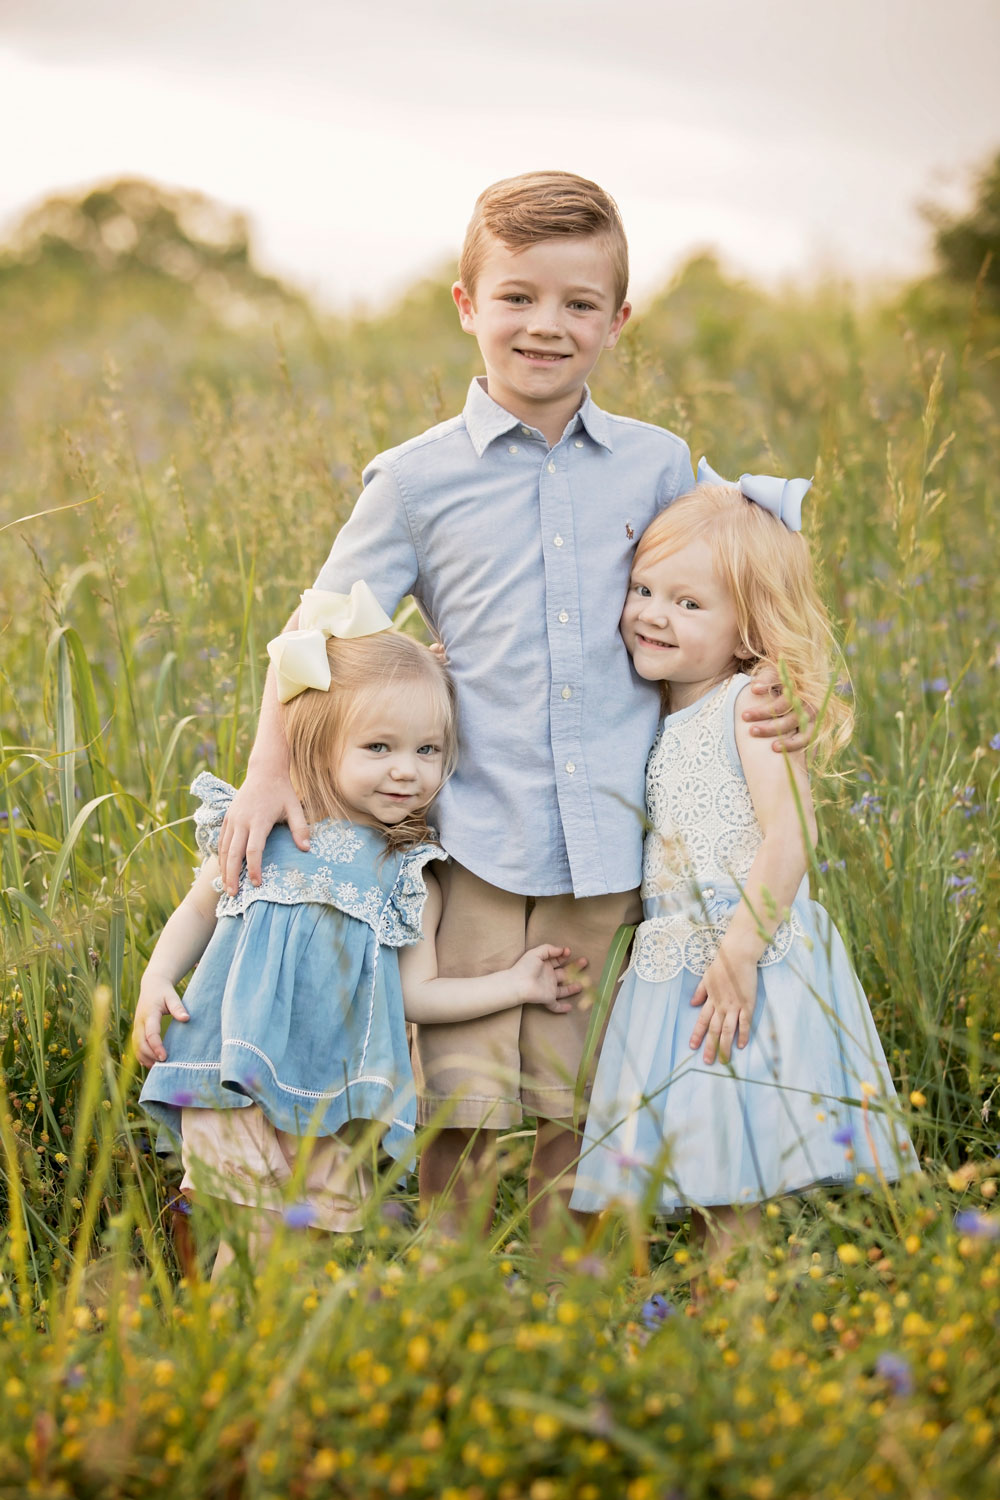 Three siblings posing in grassy field.